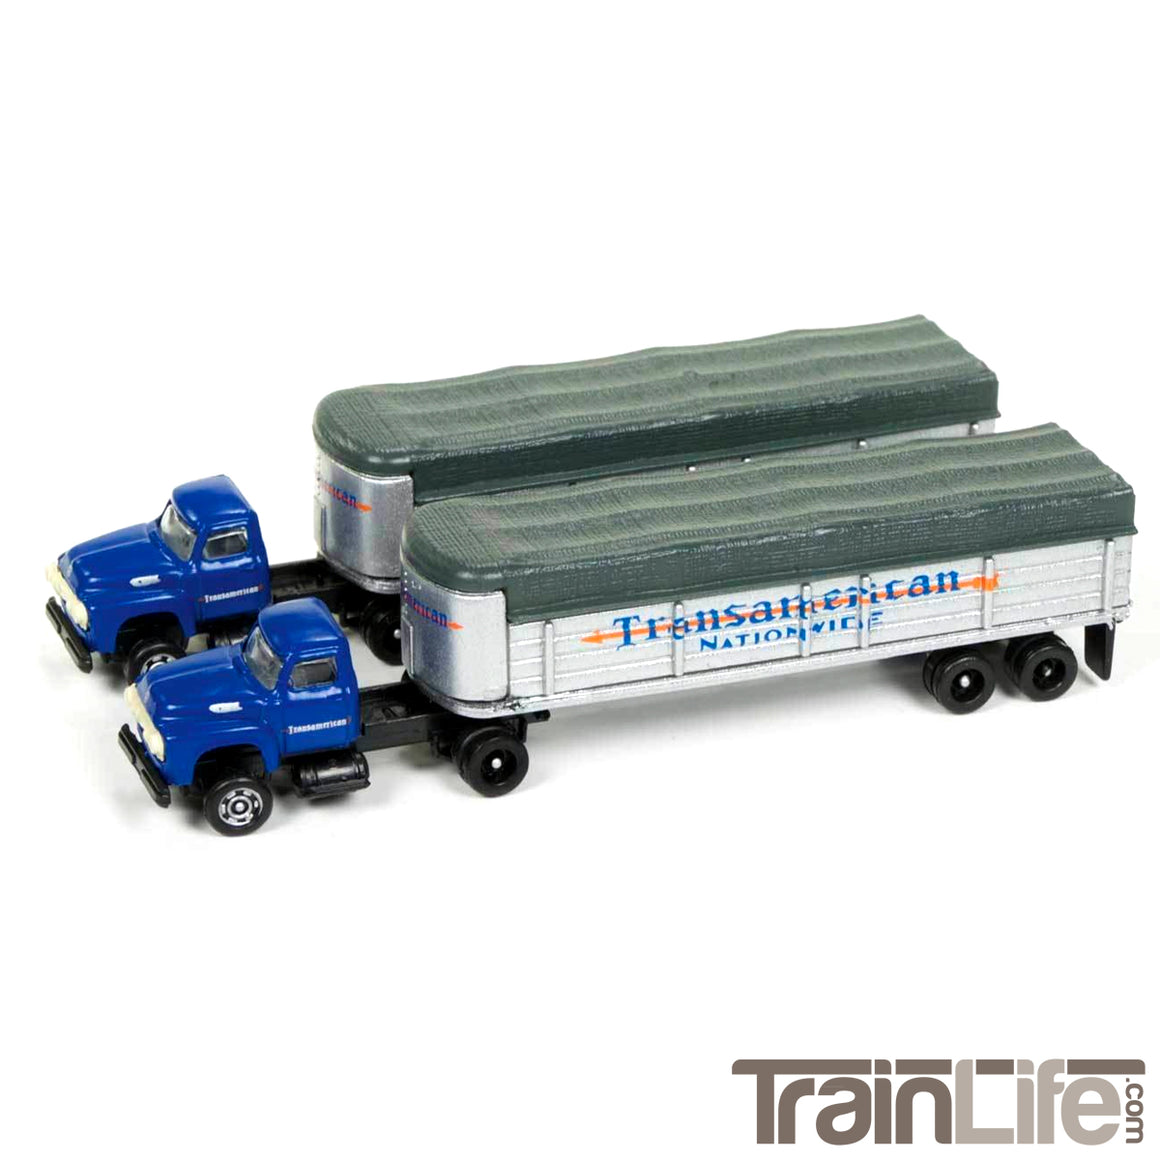 N Scale: 1954 Ford Tractor & Trailer Set - TransAmerican Trucking - 2 Pack